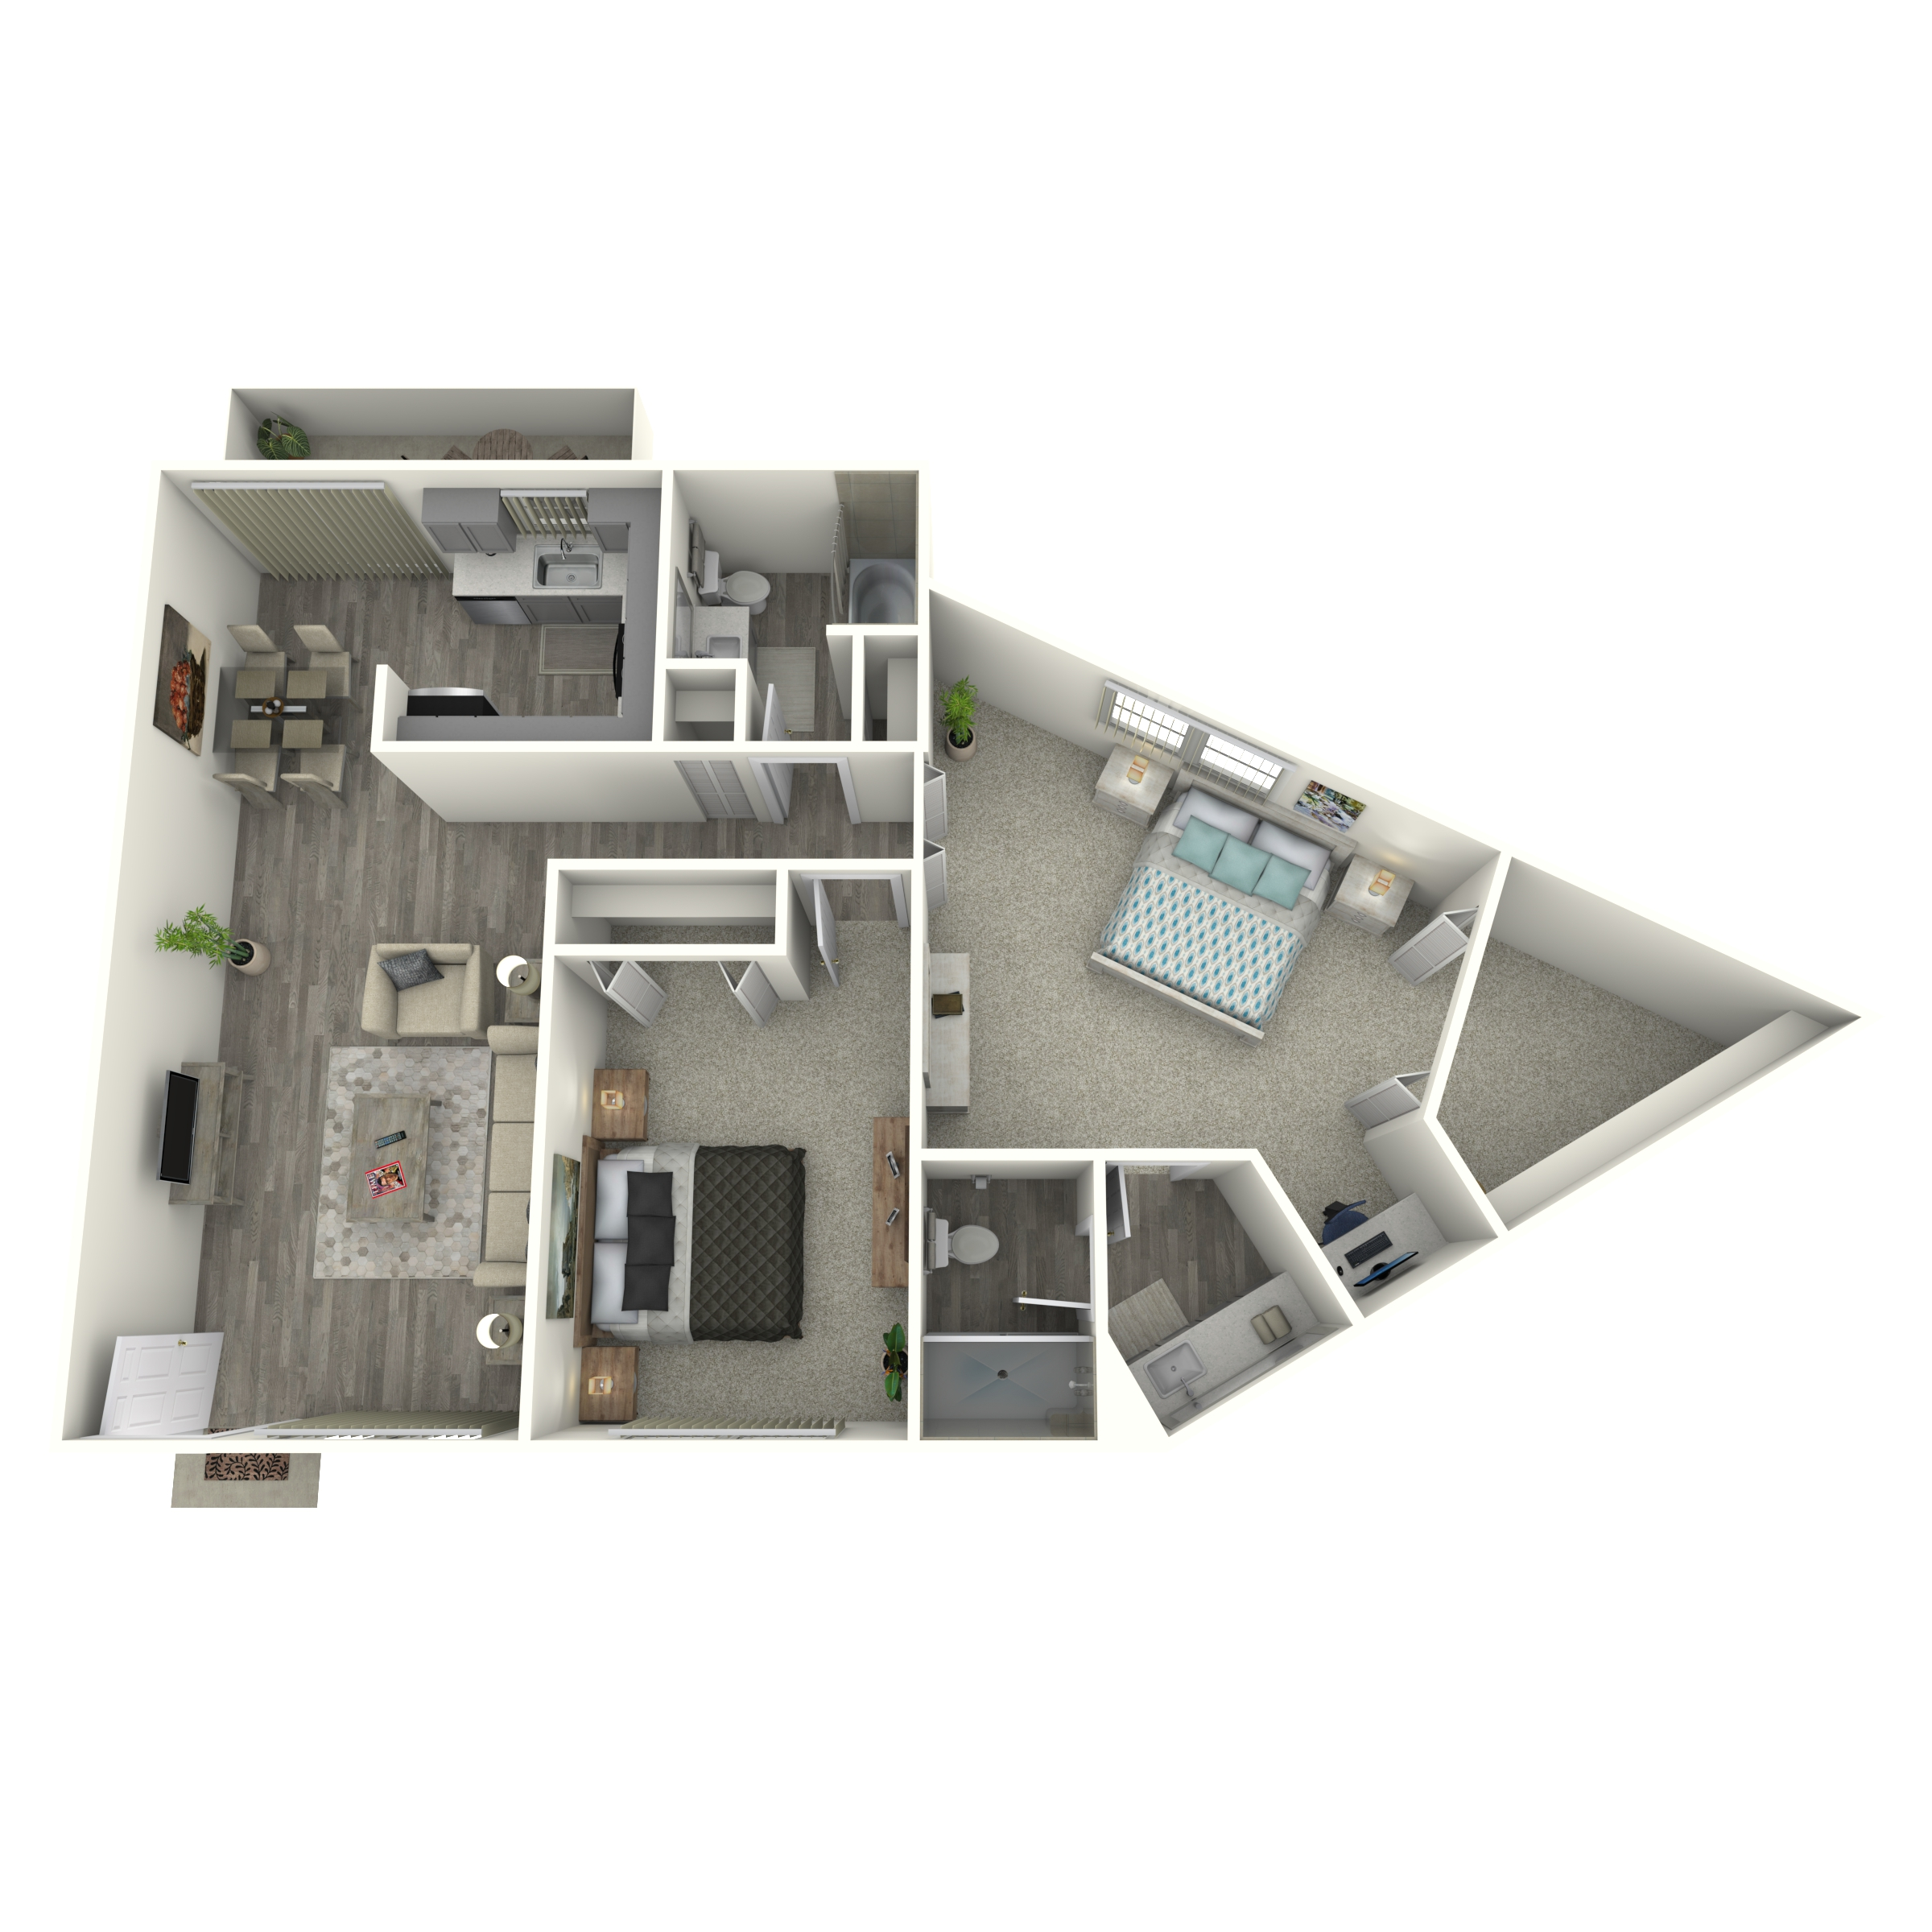 Floor plan image of 2x2 Large Renovated